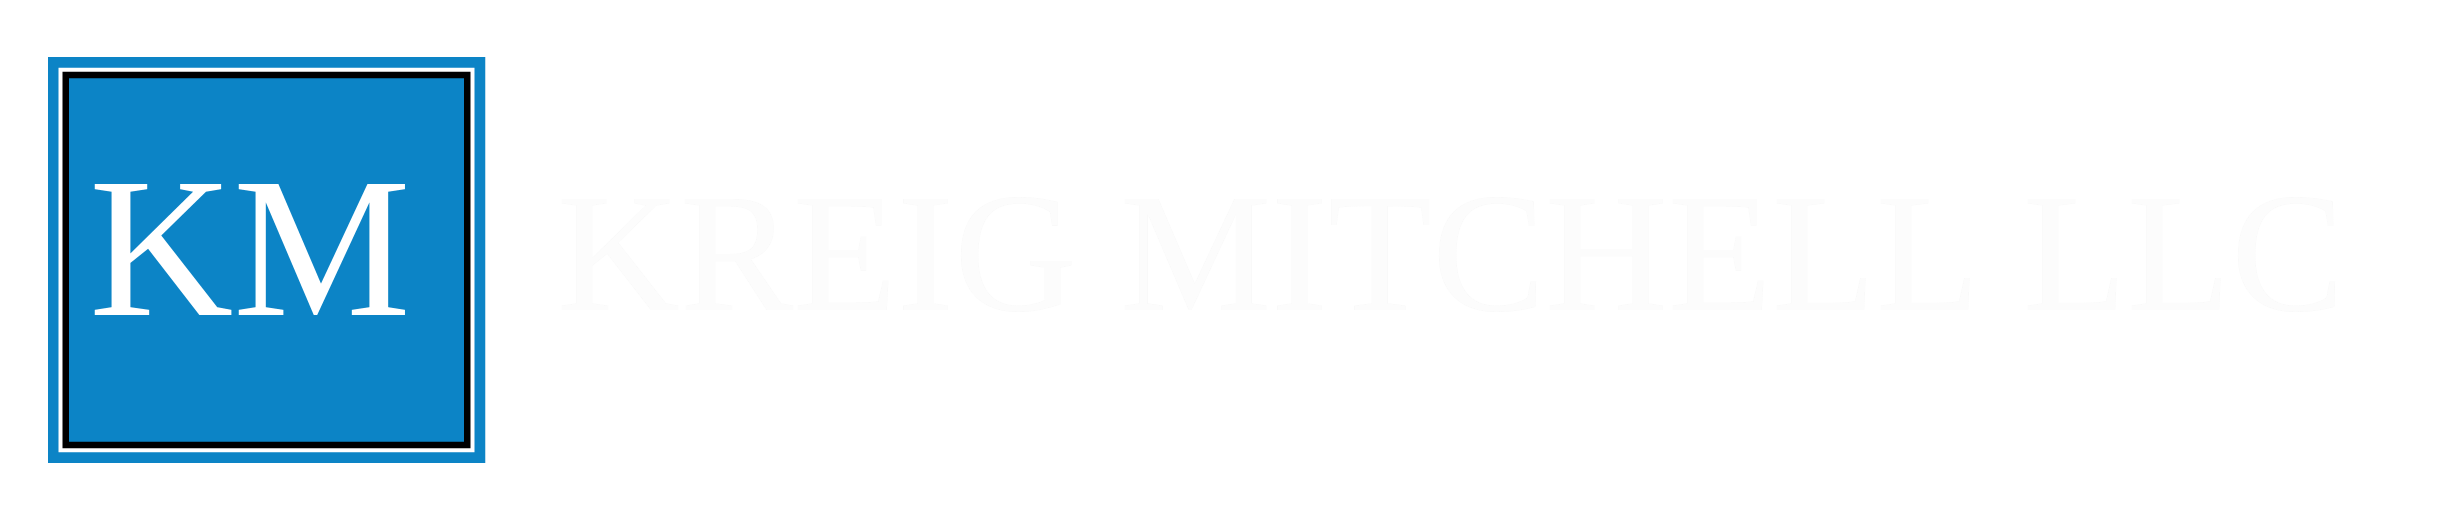 Houston Tax Relief Attorney, Kreig Mitchell LLC